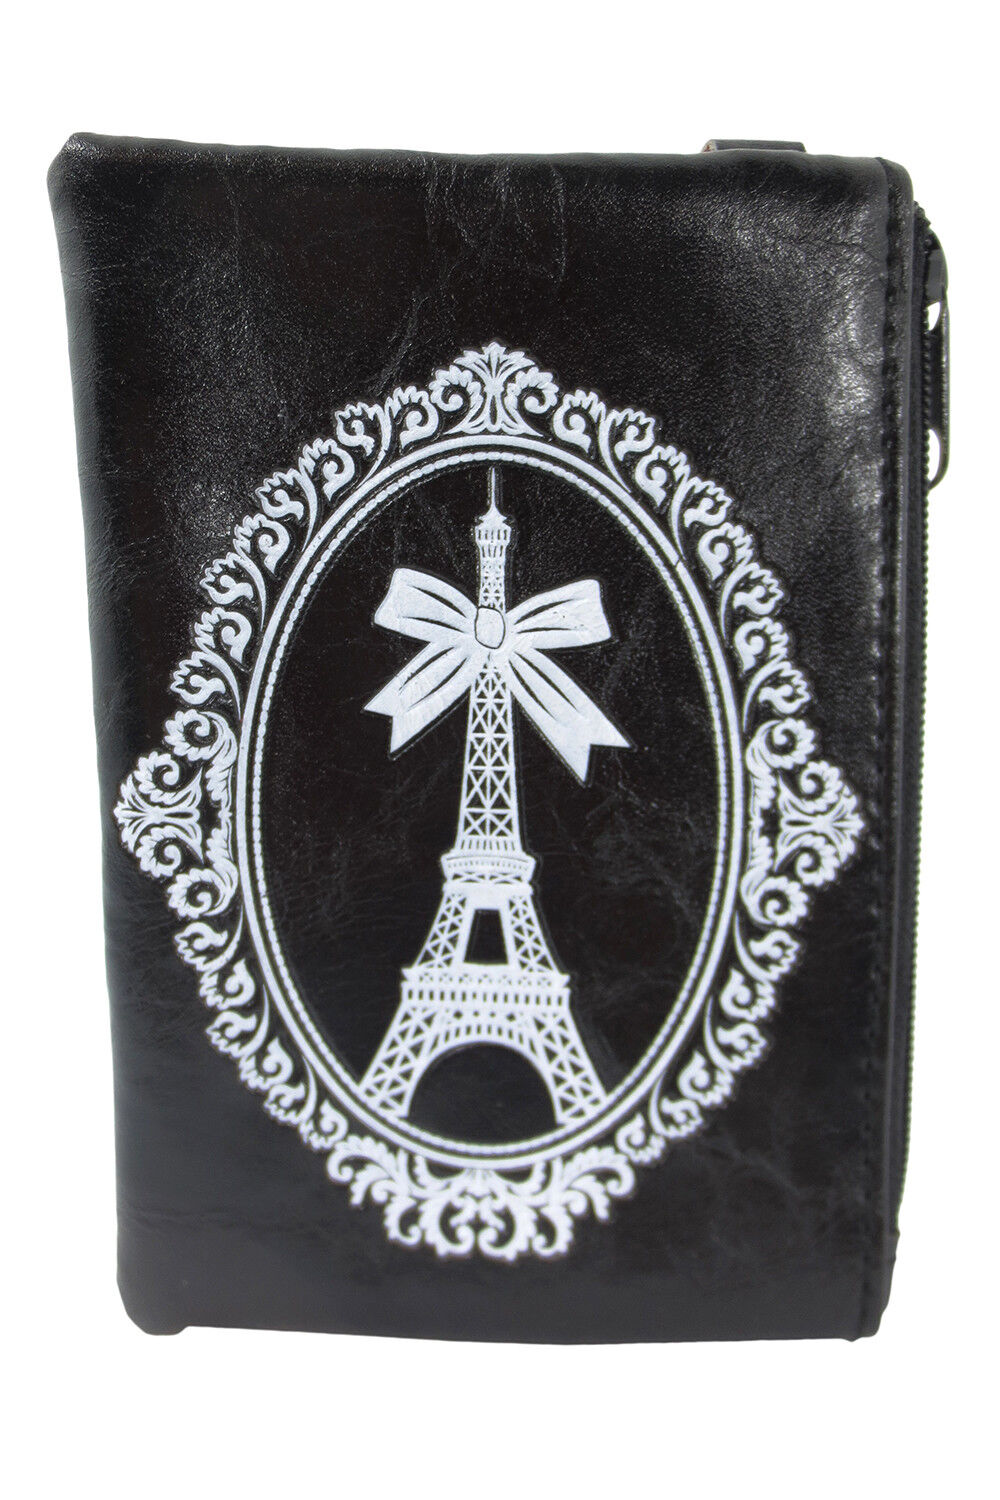 Lavishy Paris France Eiffel Tower and Bow Embossed Coin Purse Keychain